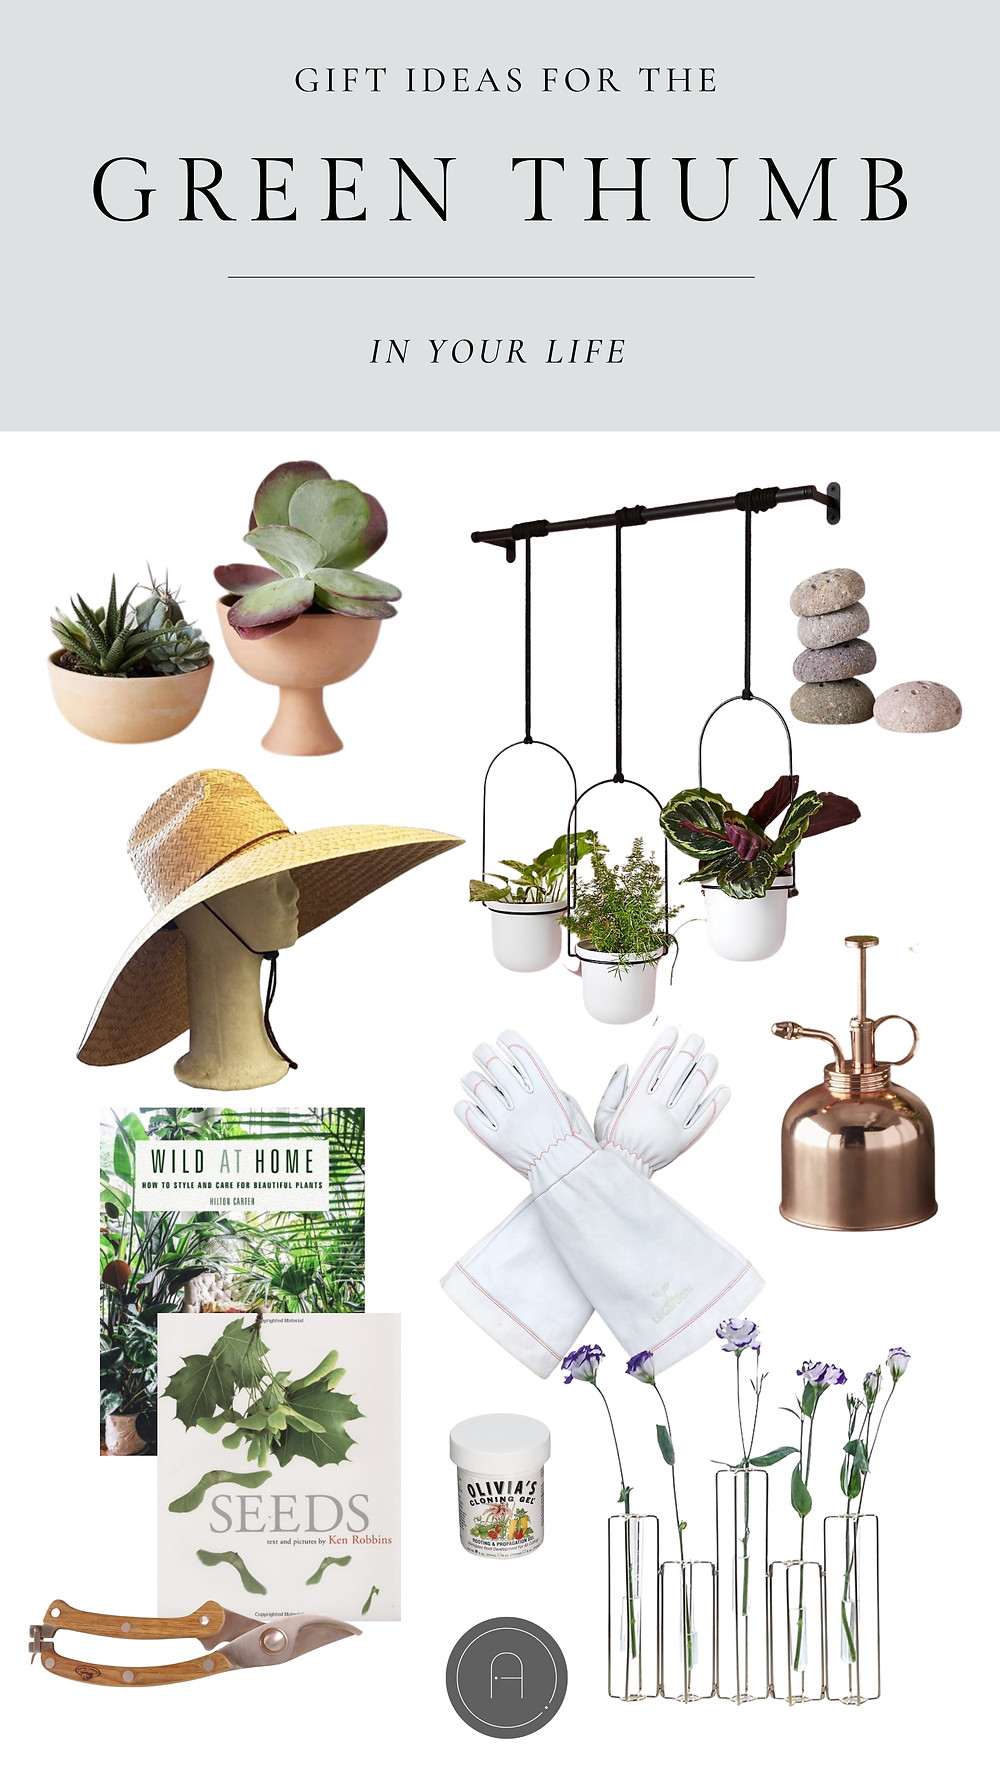 Gift ideas for the green thumb in your life terra-cotta planter vase succulent plants wall hanging cb2 crate and barrel gardening gloves leather sun hat guide to seeds house plants accordion vase viles propagating brass spritzer clippers cloning gel wood texture flower frogs floral expert